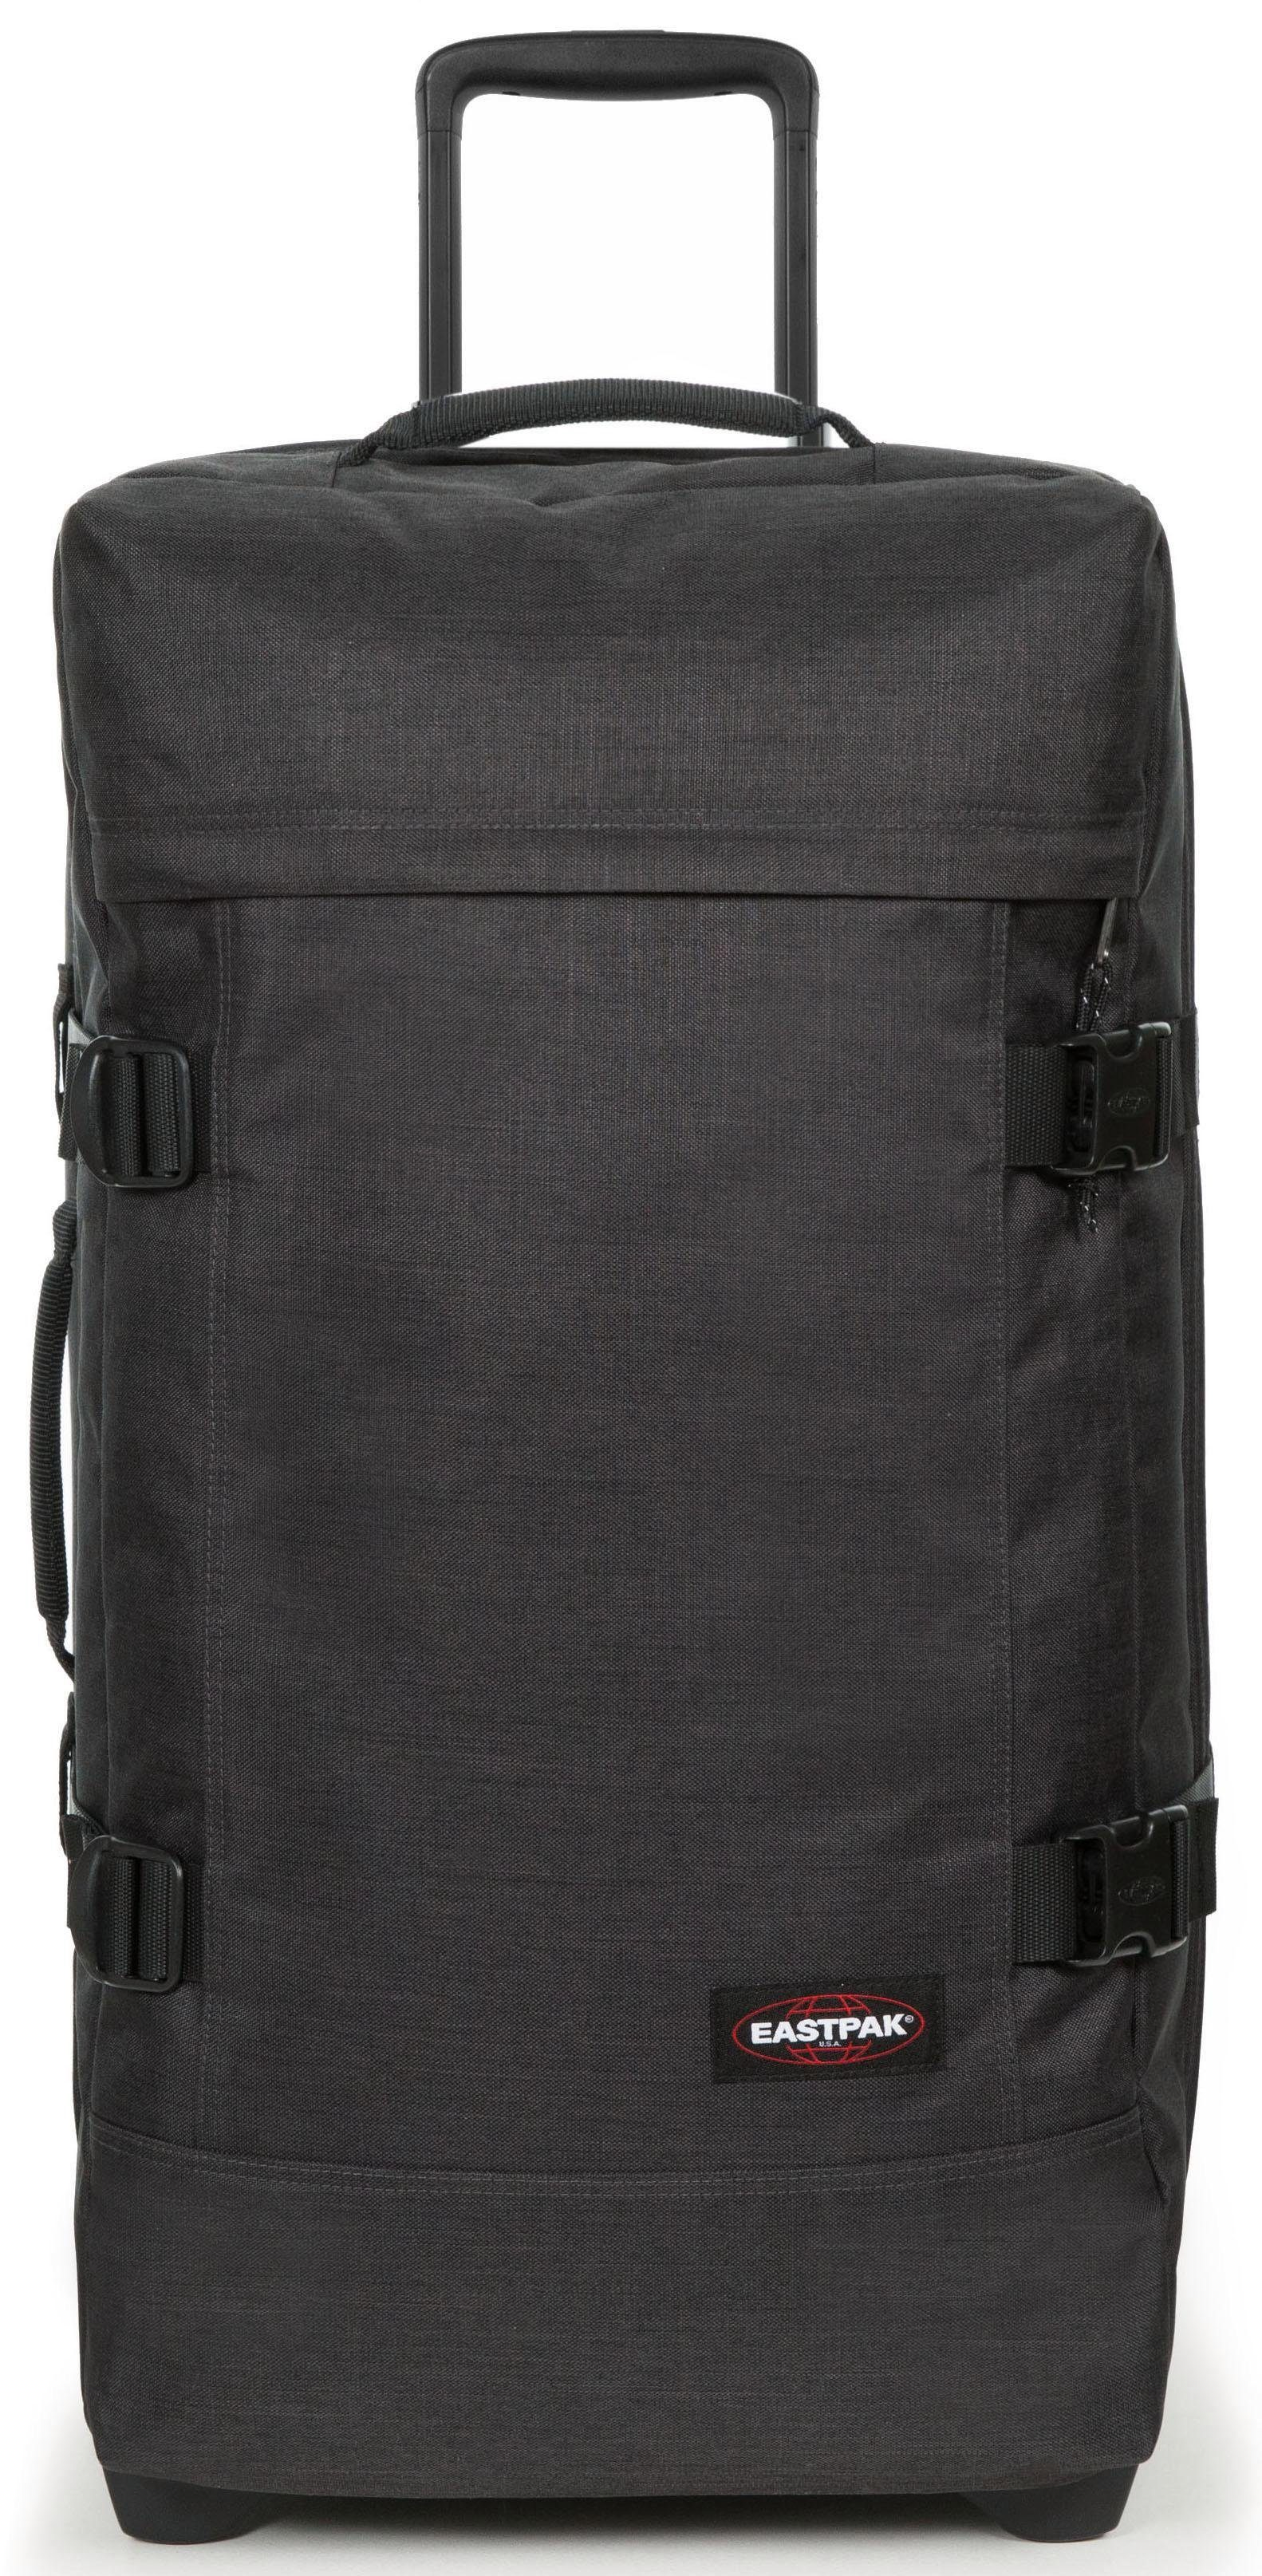 Eastpak Reisetasche mit 2 Rollen, »TRANVERZ WHEELED LUGGAGE M, loud black«